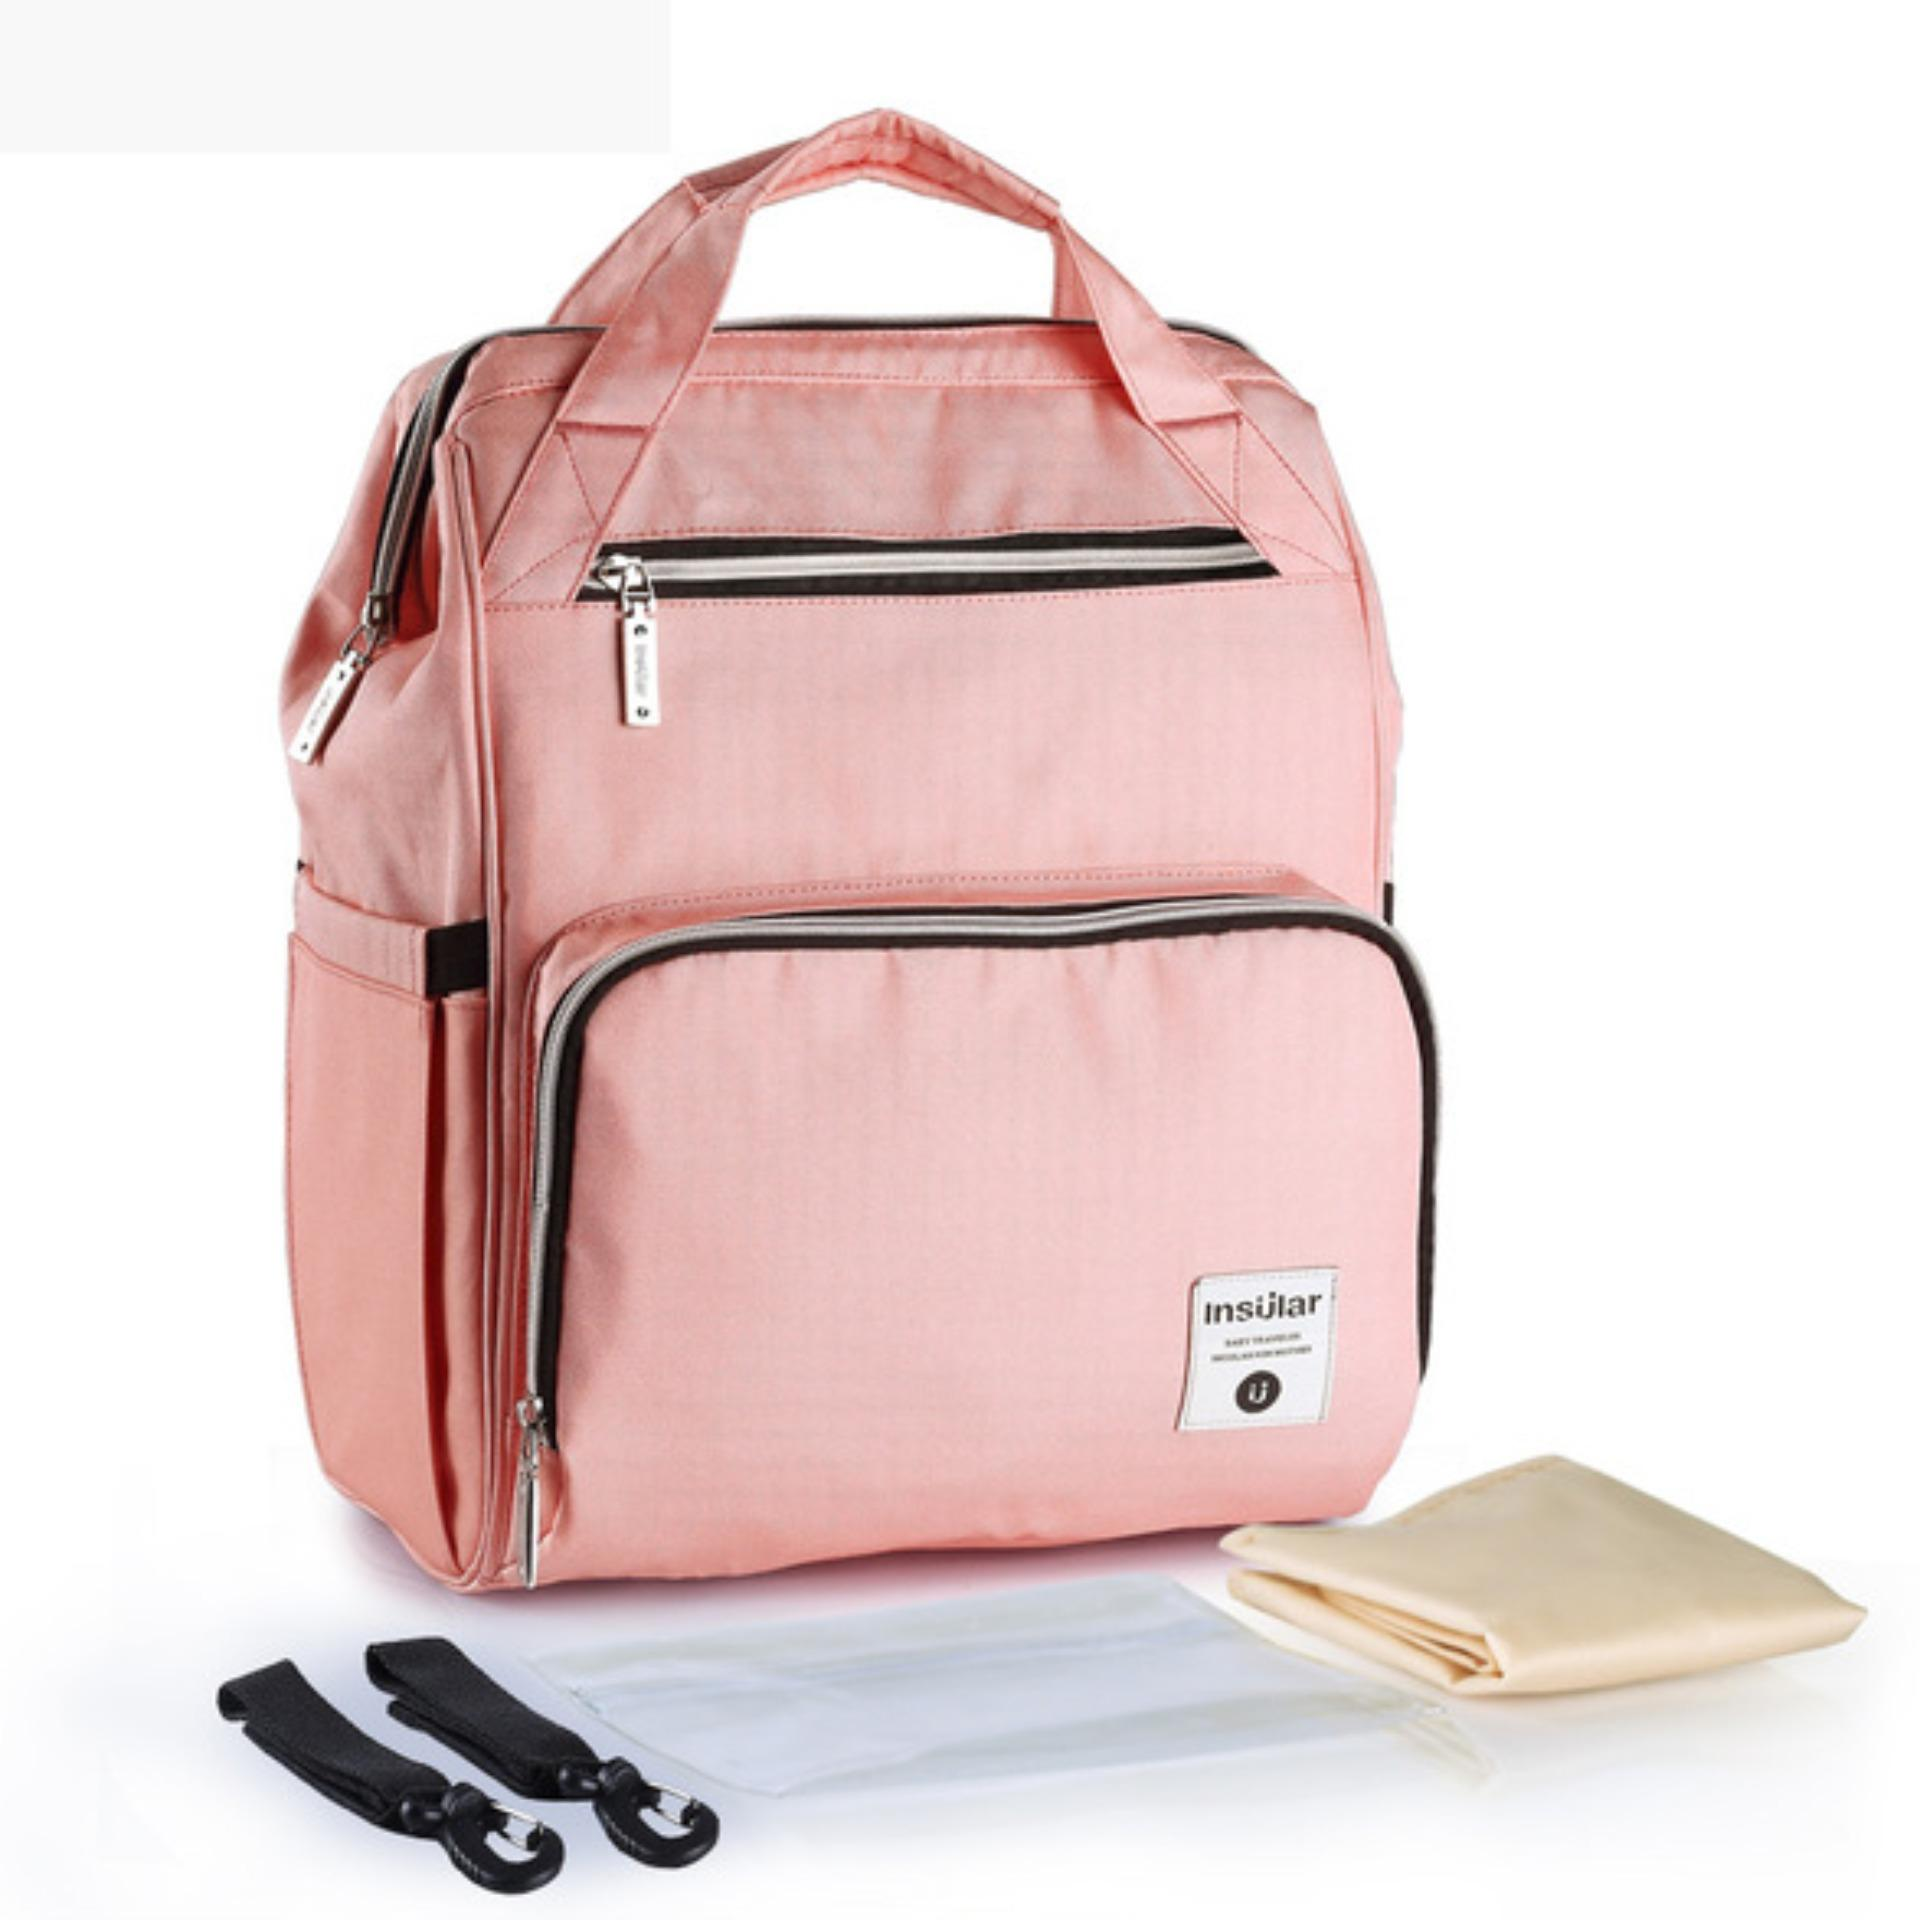 Insular 2018 Fashion Diaper Tote Bag Diaper Backpack Pink Coupon Code